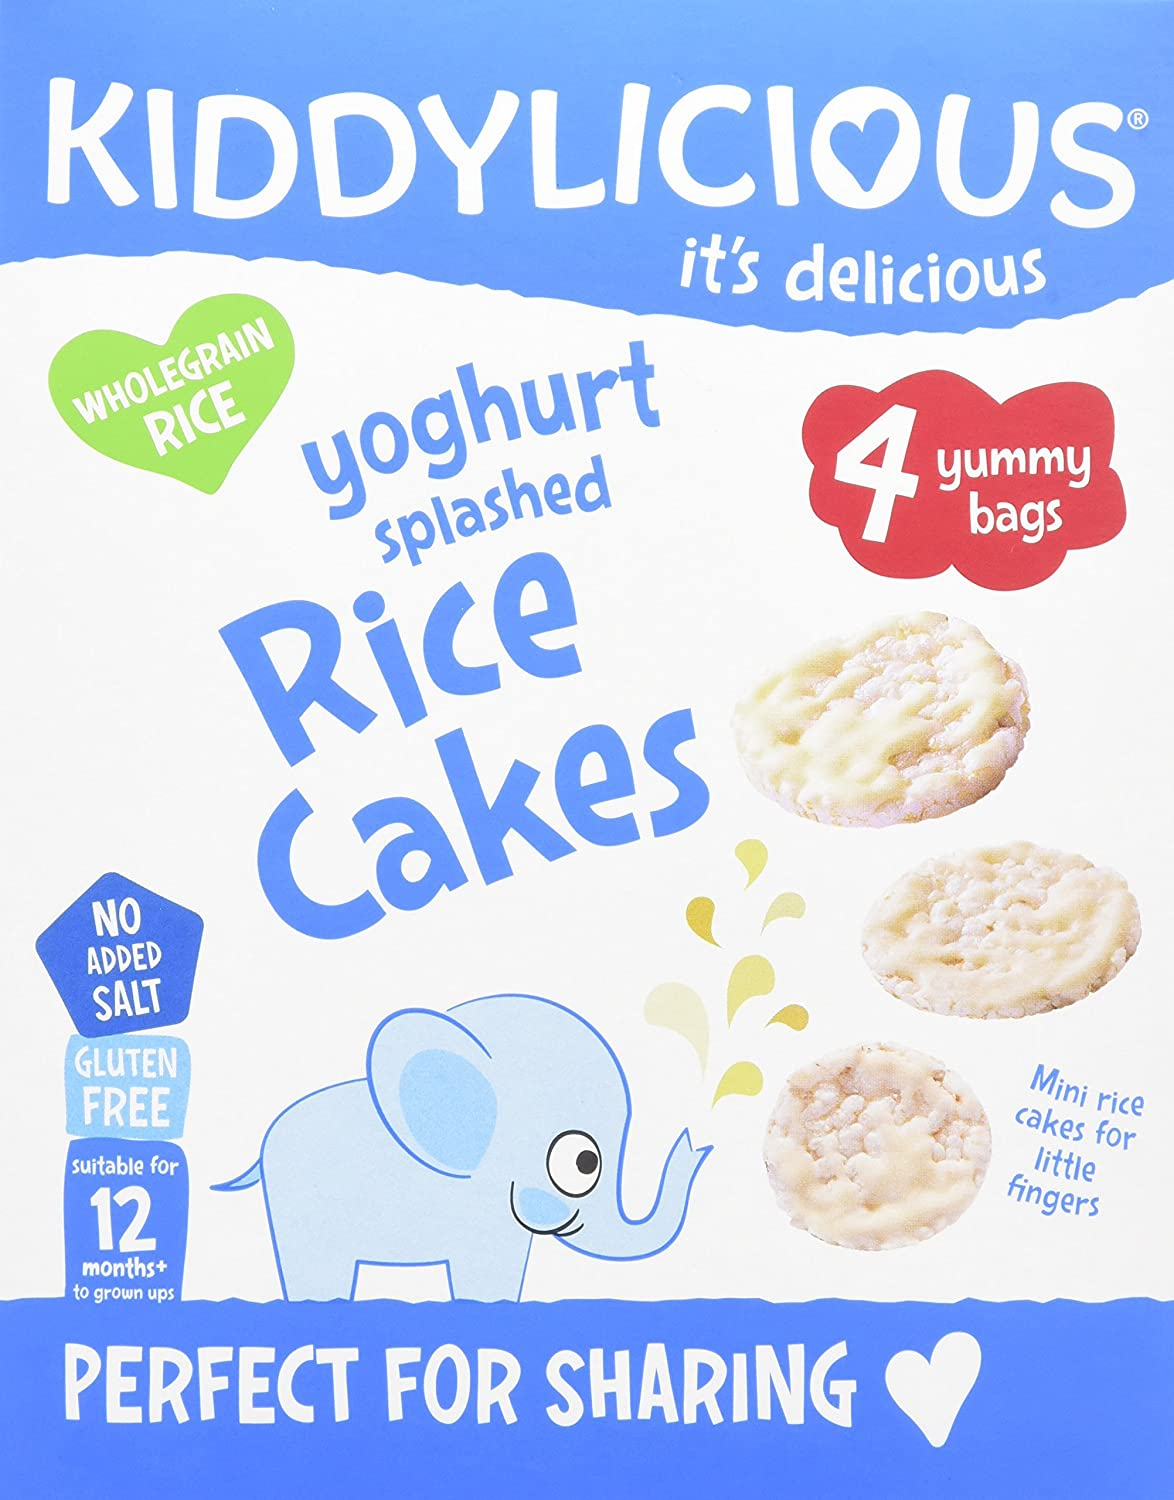 Kiddylicious Yoghurt Splashed Rice Cakes, Pack of 4, Total 16 Kids Food Co 1080220